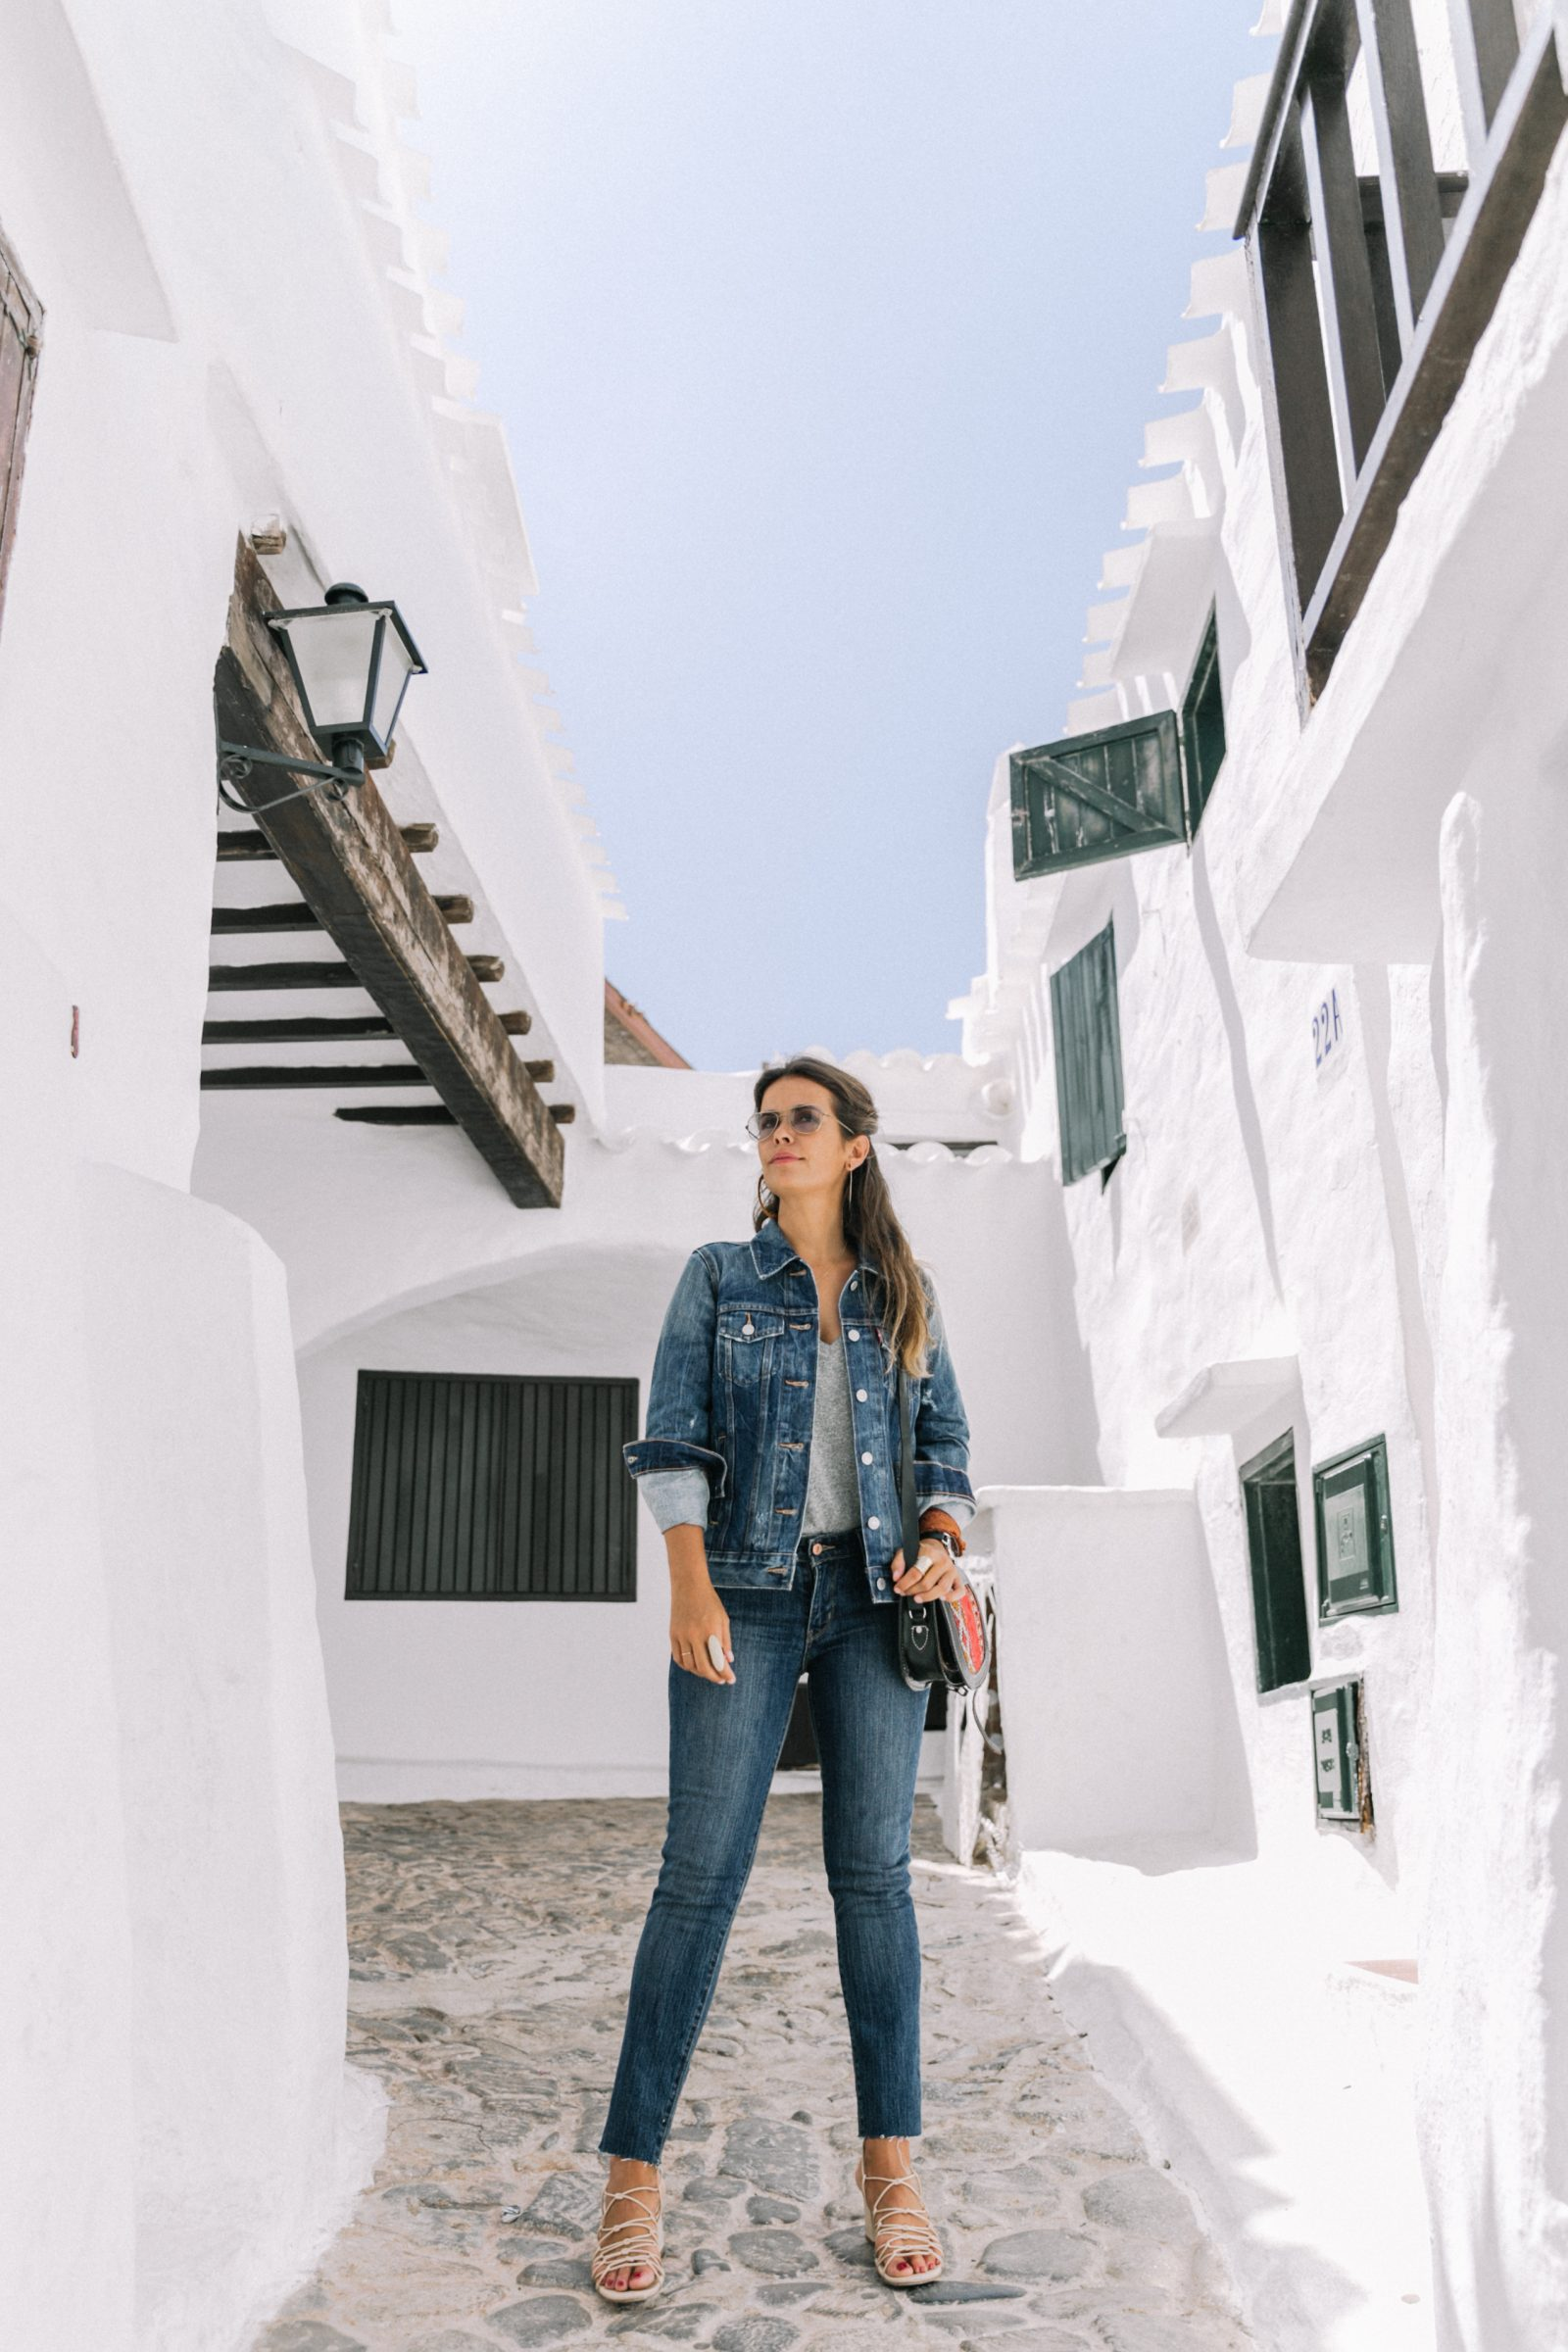 Live_in_Levis-Denim-Who_What_Wear-Levis-Denim-Double_Denim-Menorca-Street_Style-Collage_Vintage-97